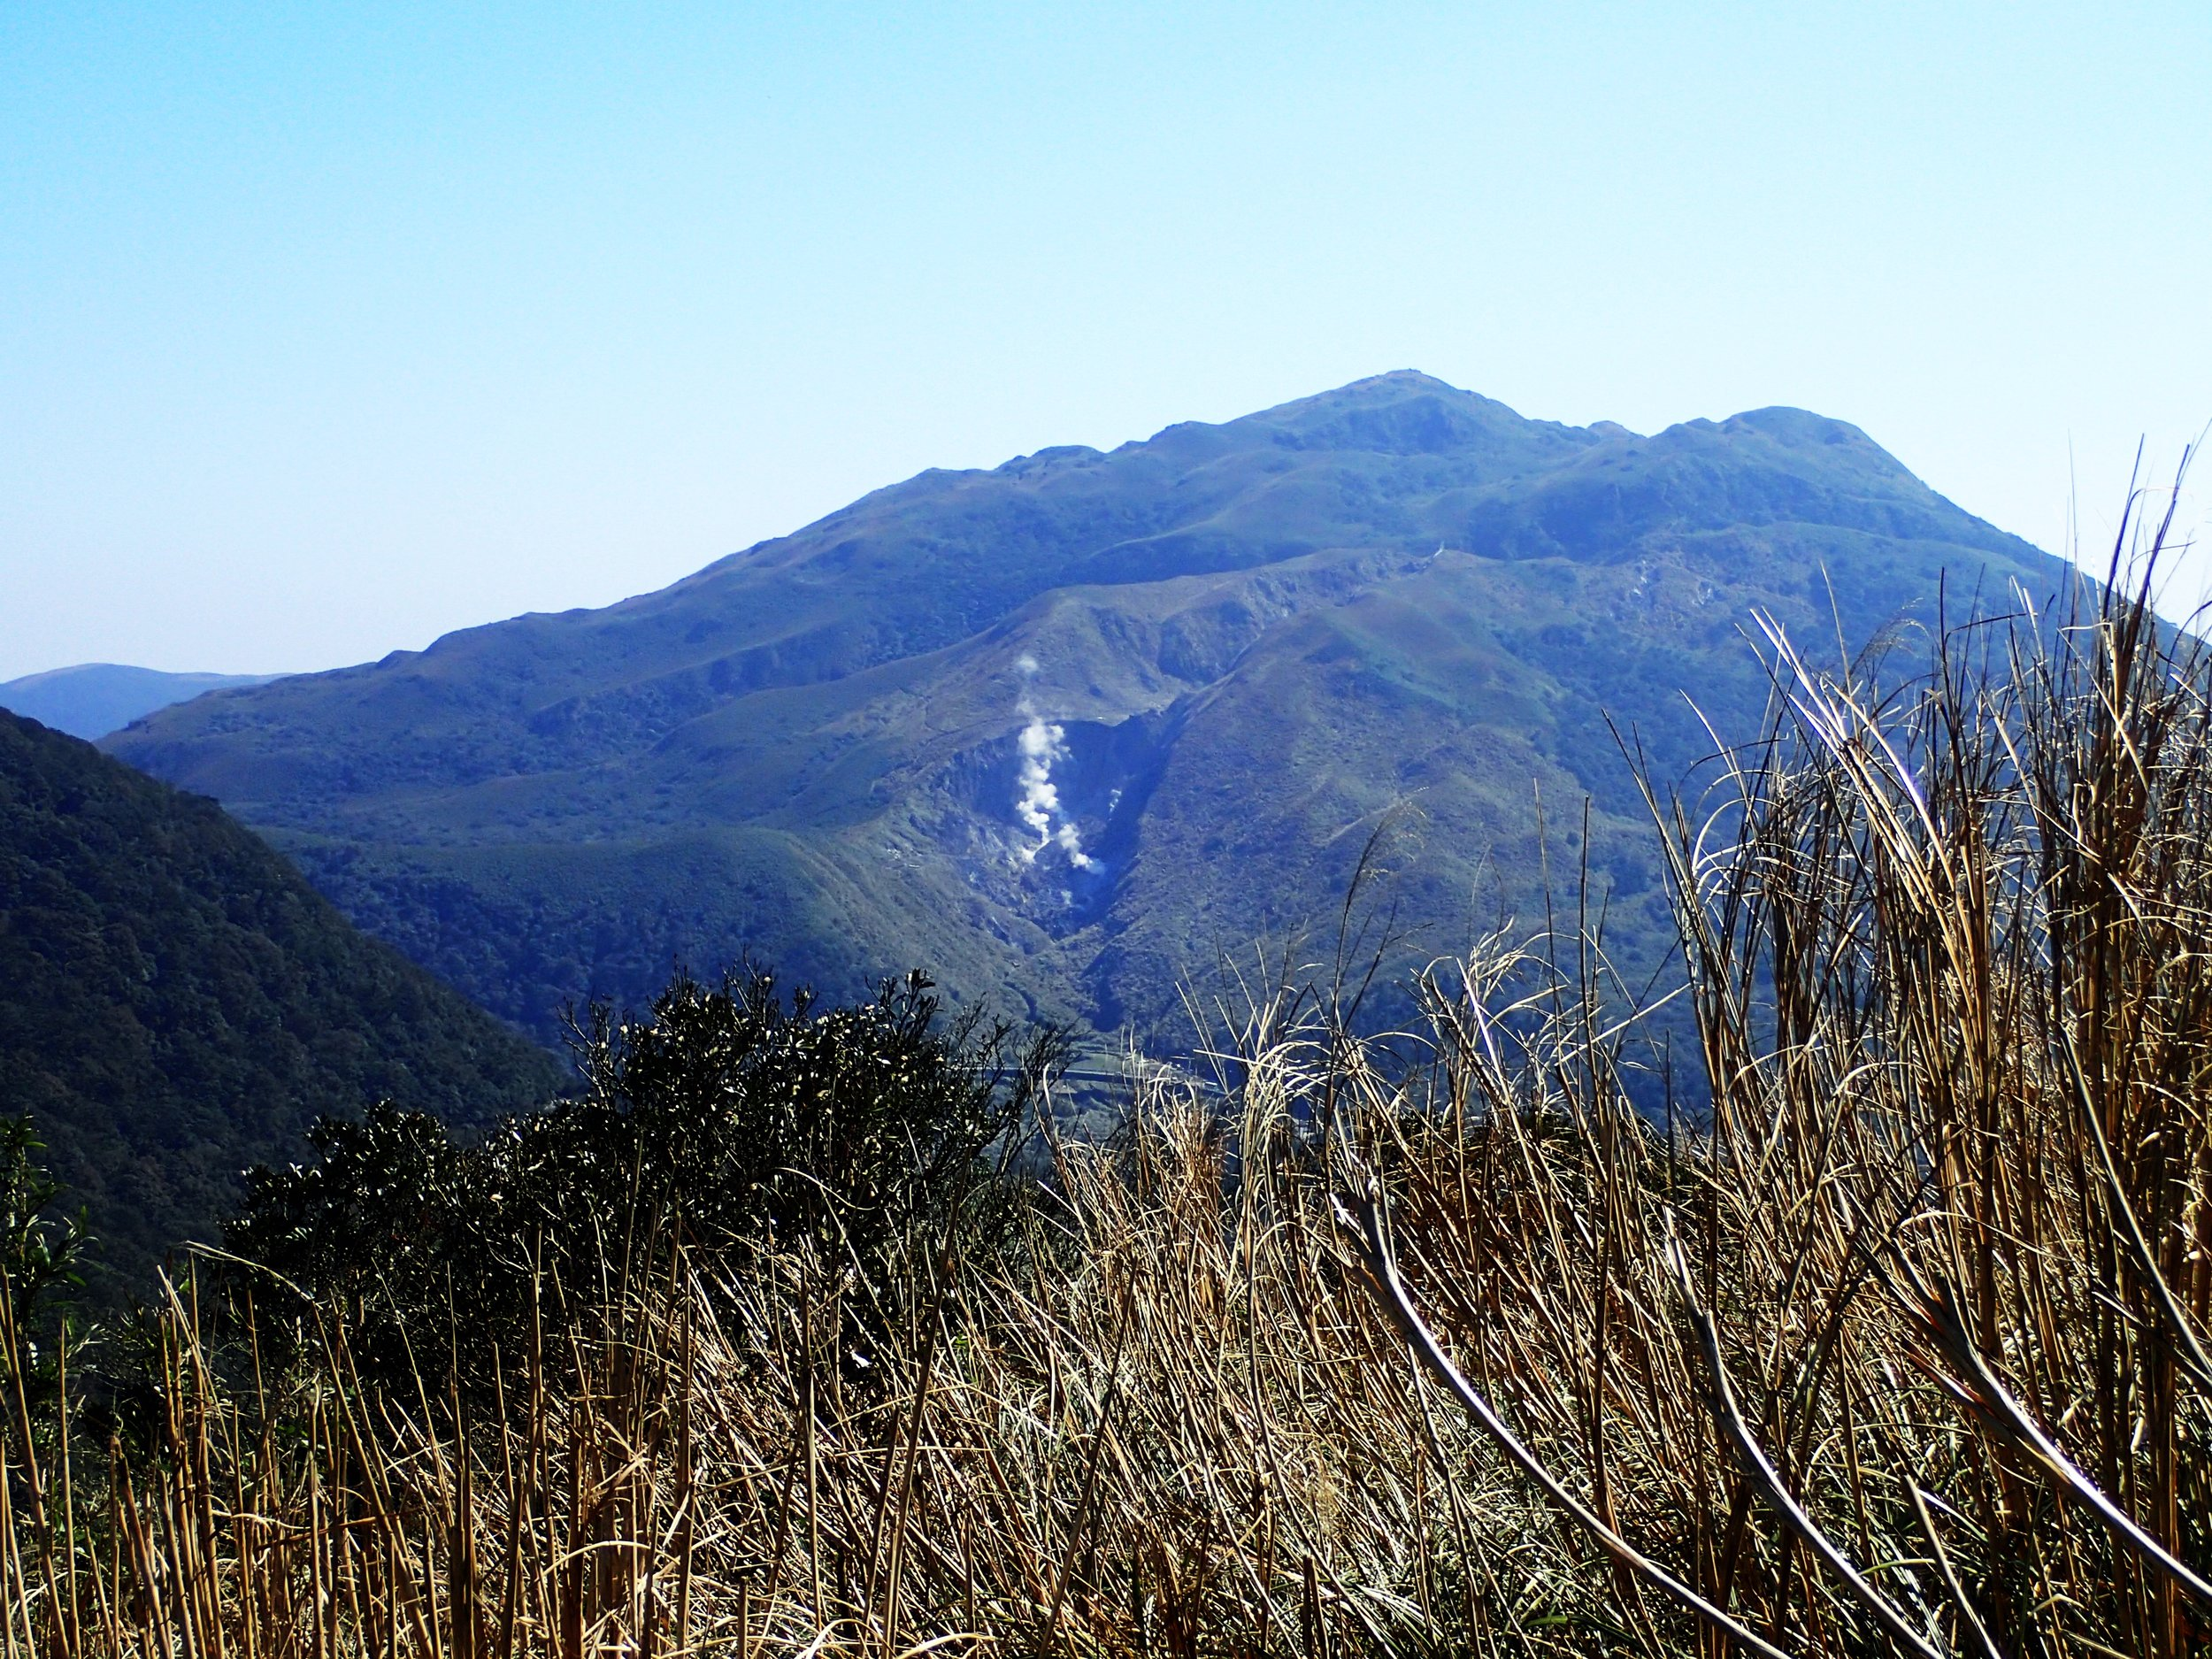 Looking back at the Xiaoyoukeng fumerole on the side of Mt Qixing